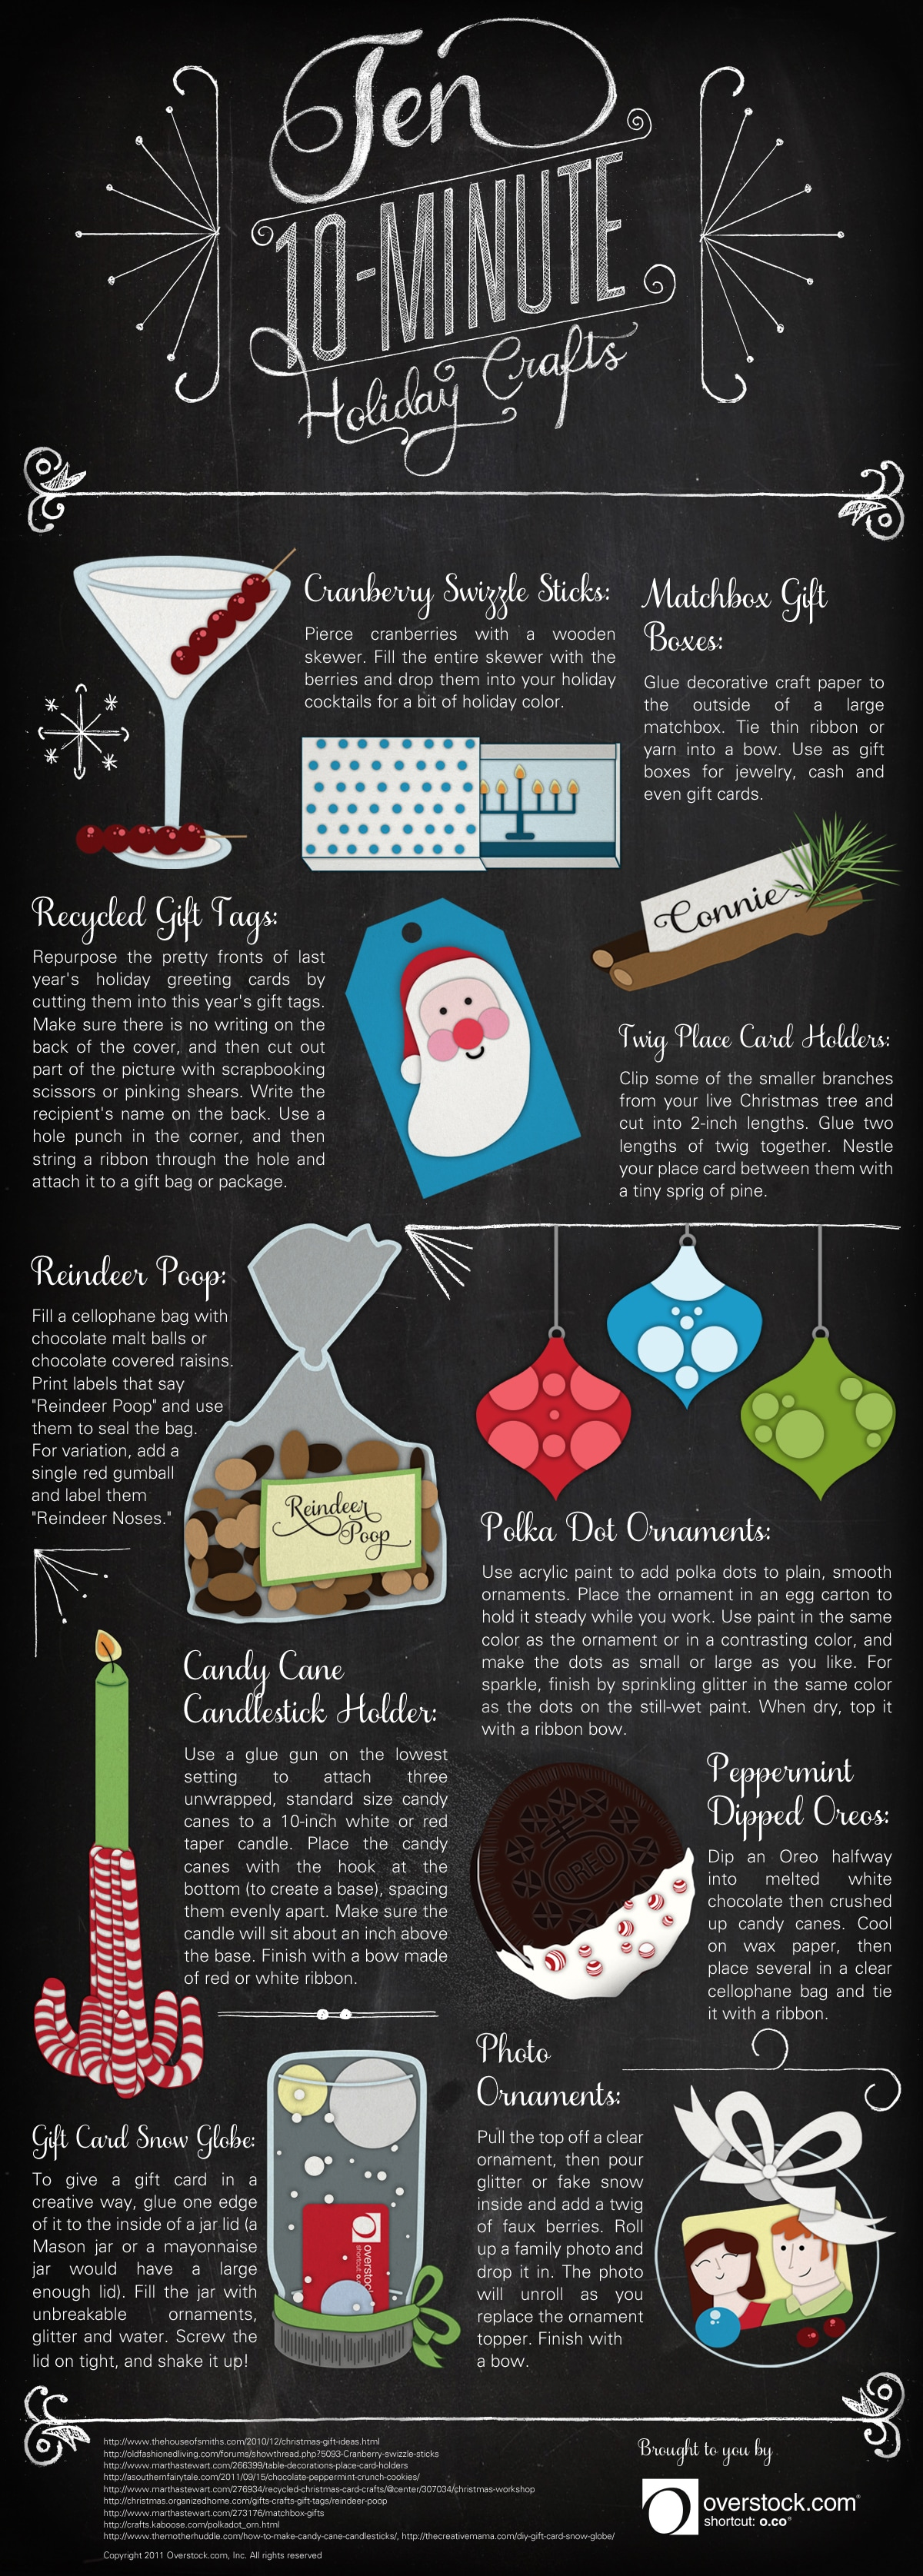 Ten 10-minute Holiday Crafts infographic from O.co